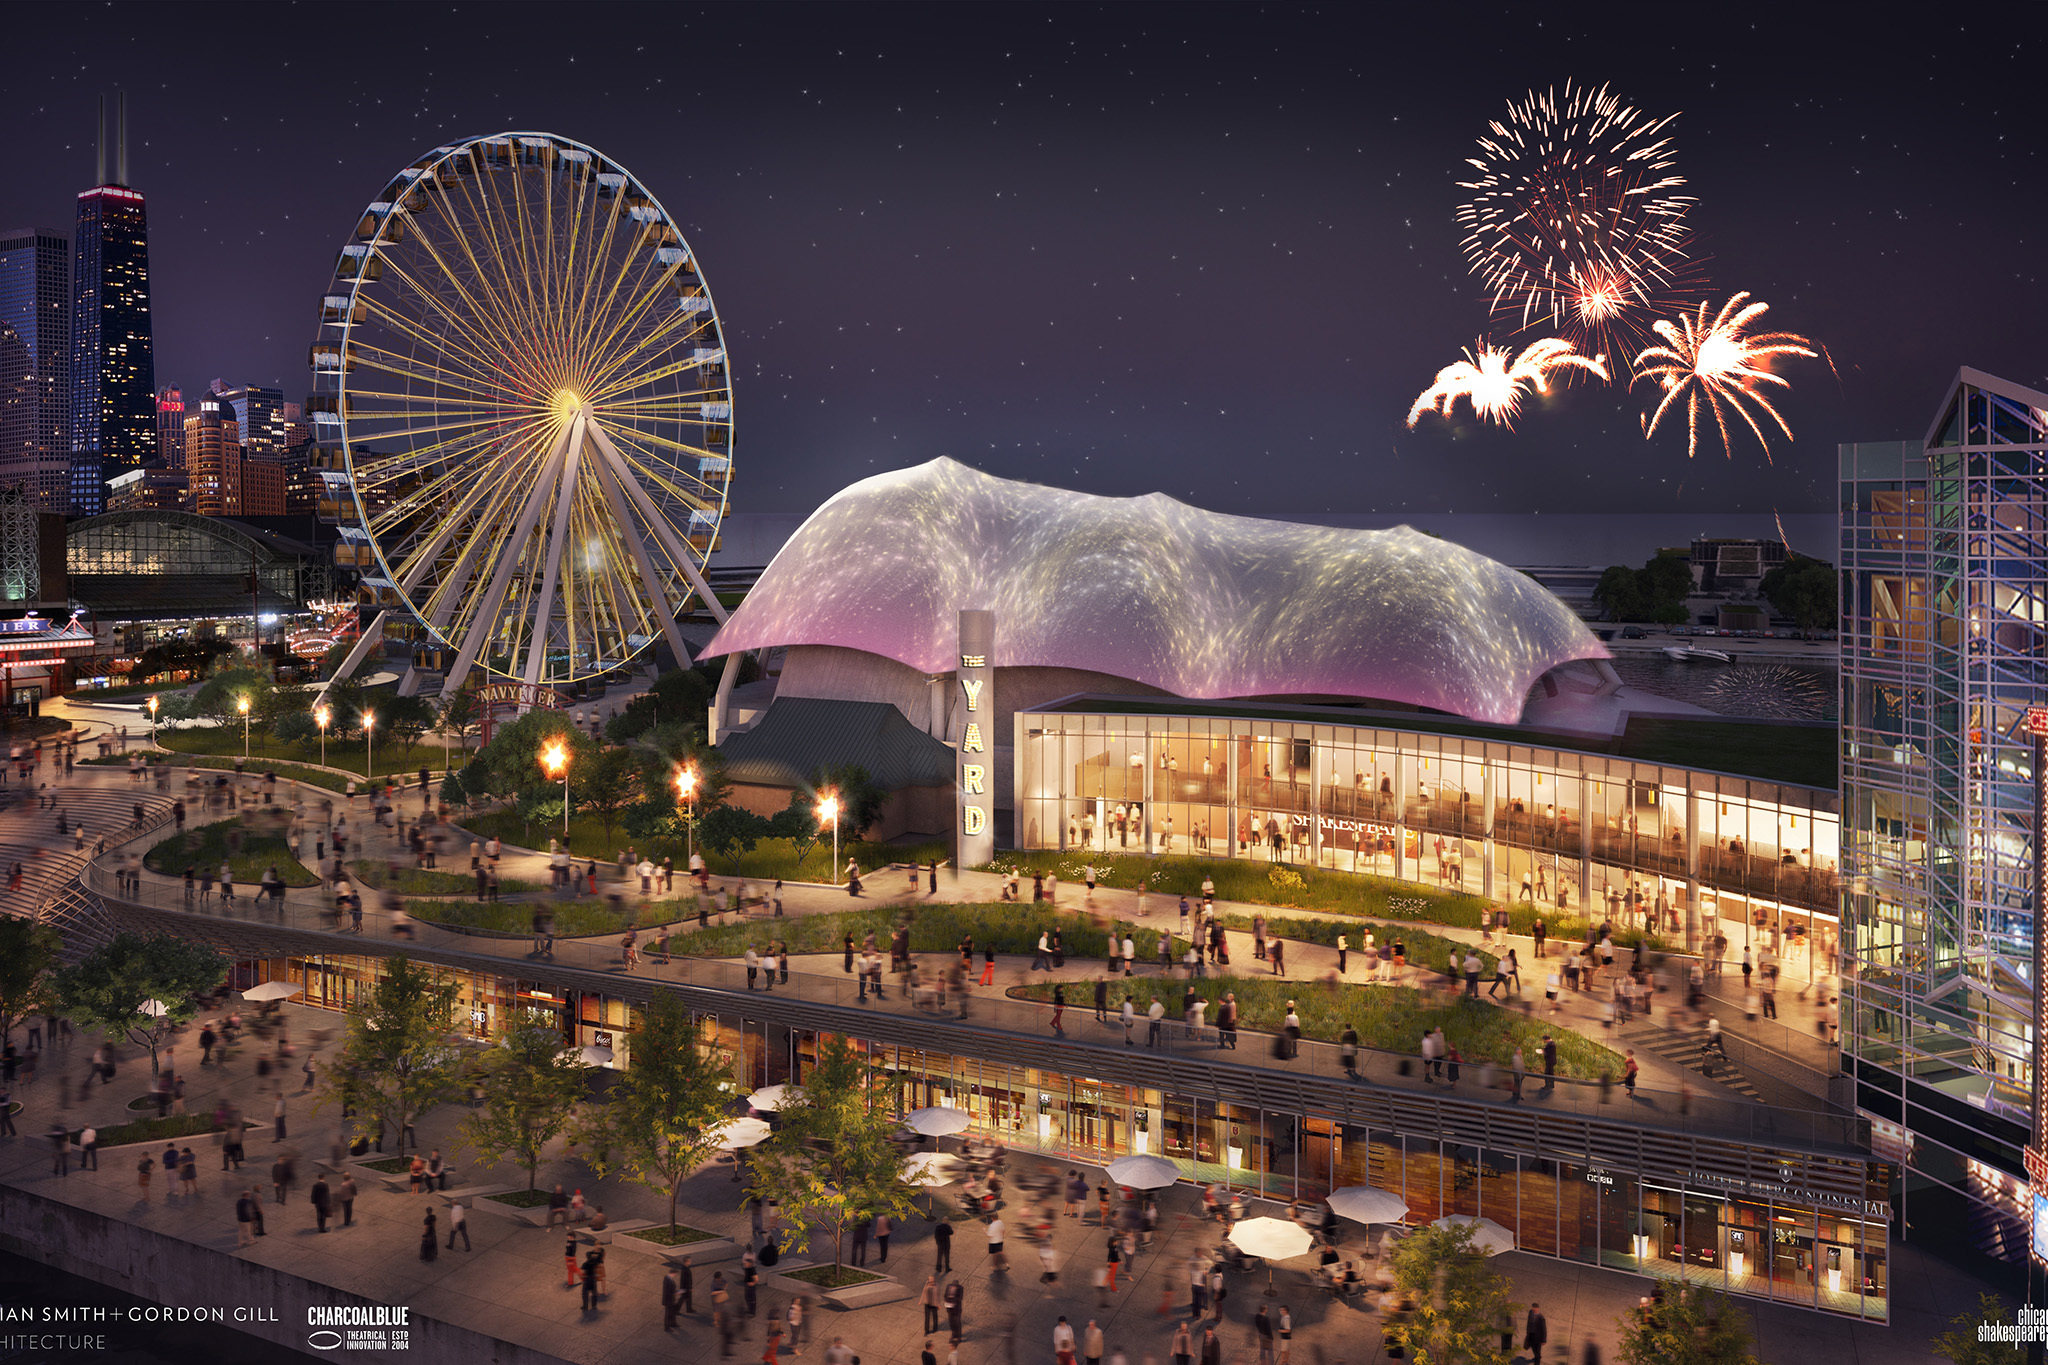 Chicago Shakespeare announces Navy Pier expansion